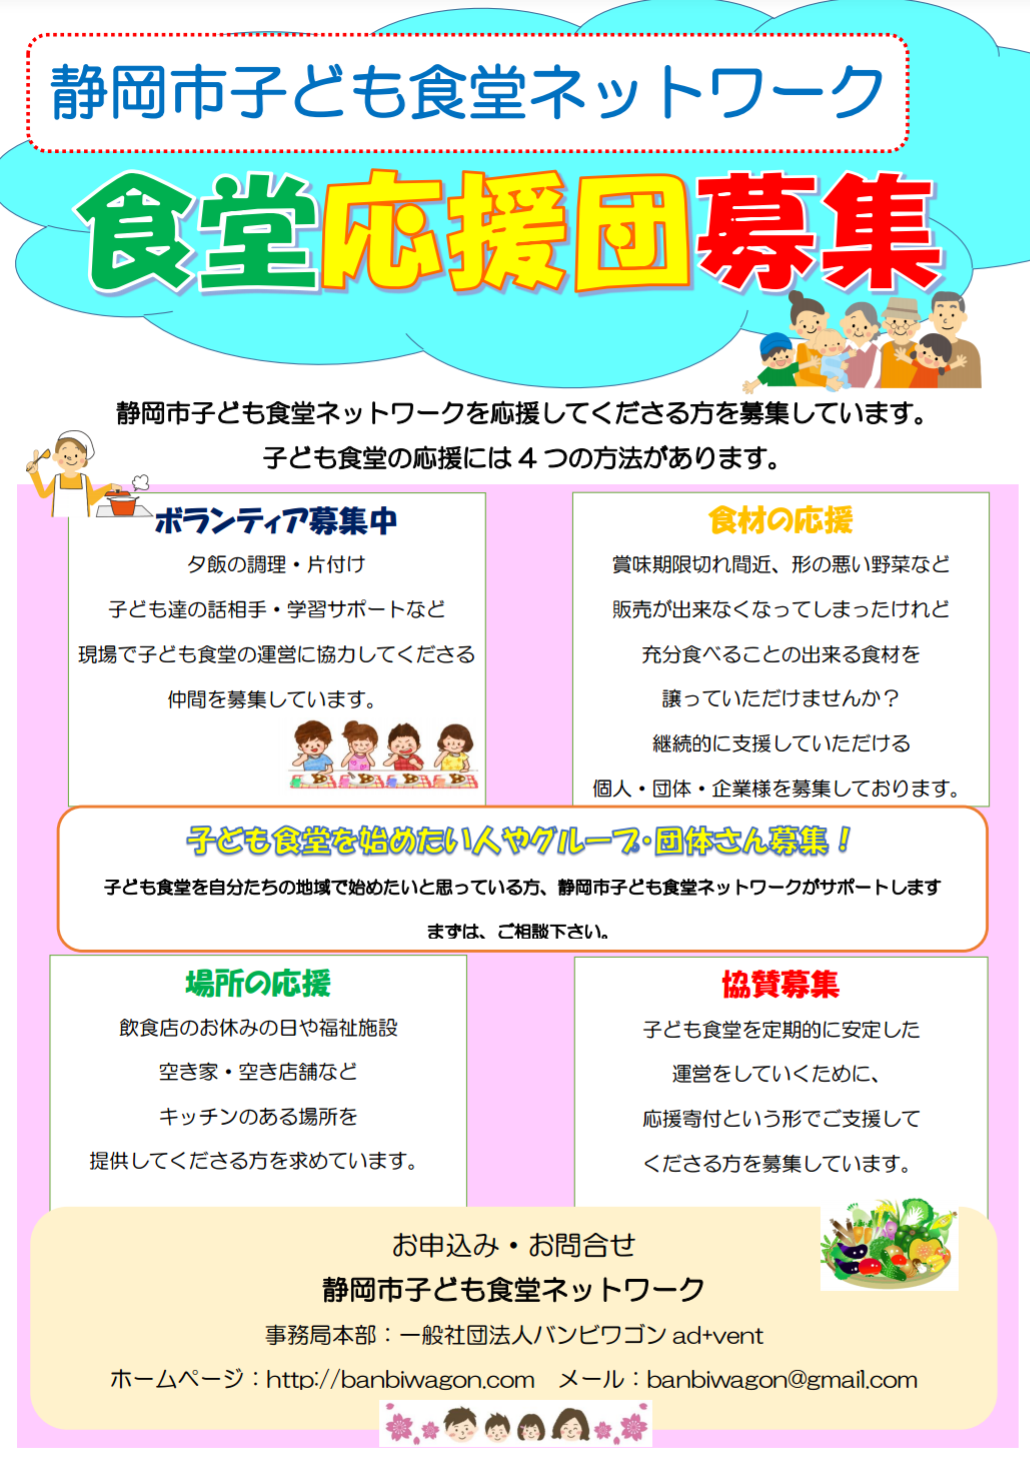 20160504180600323.png